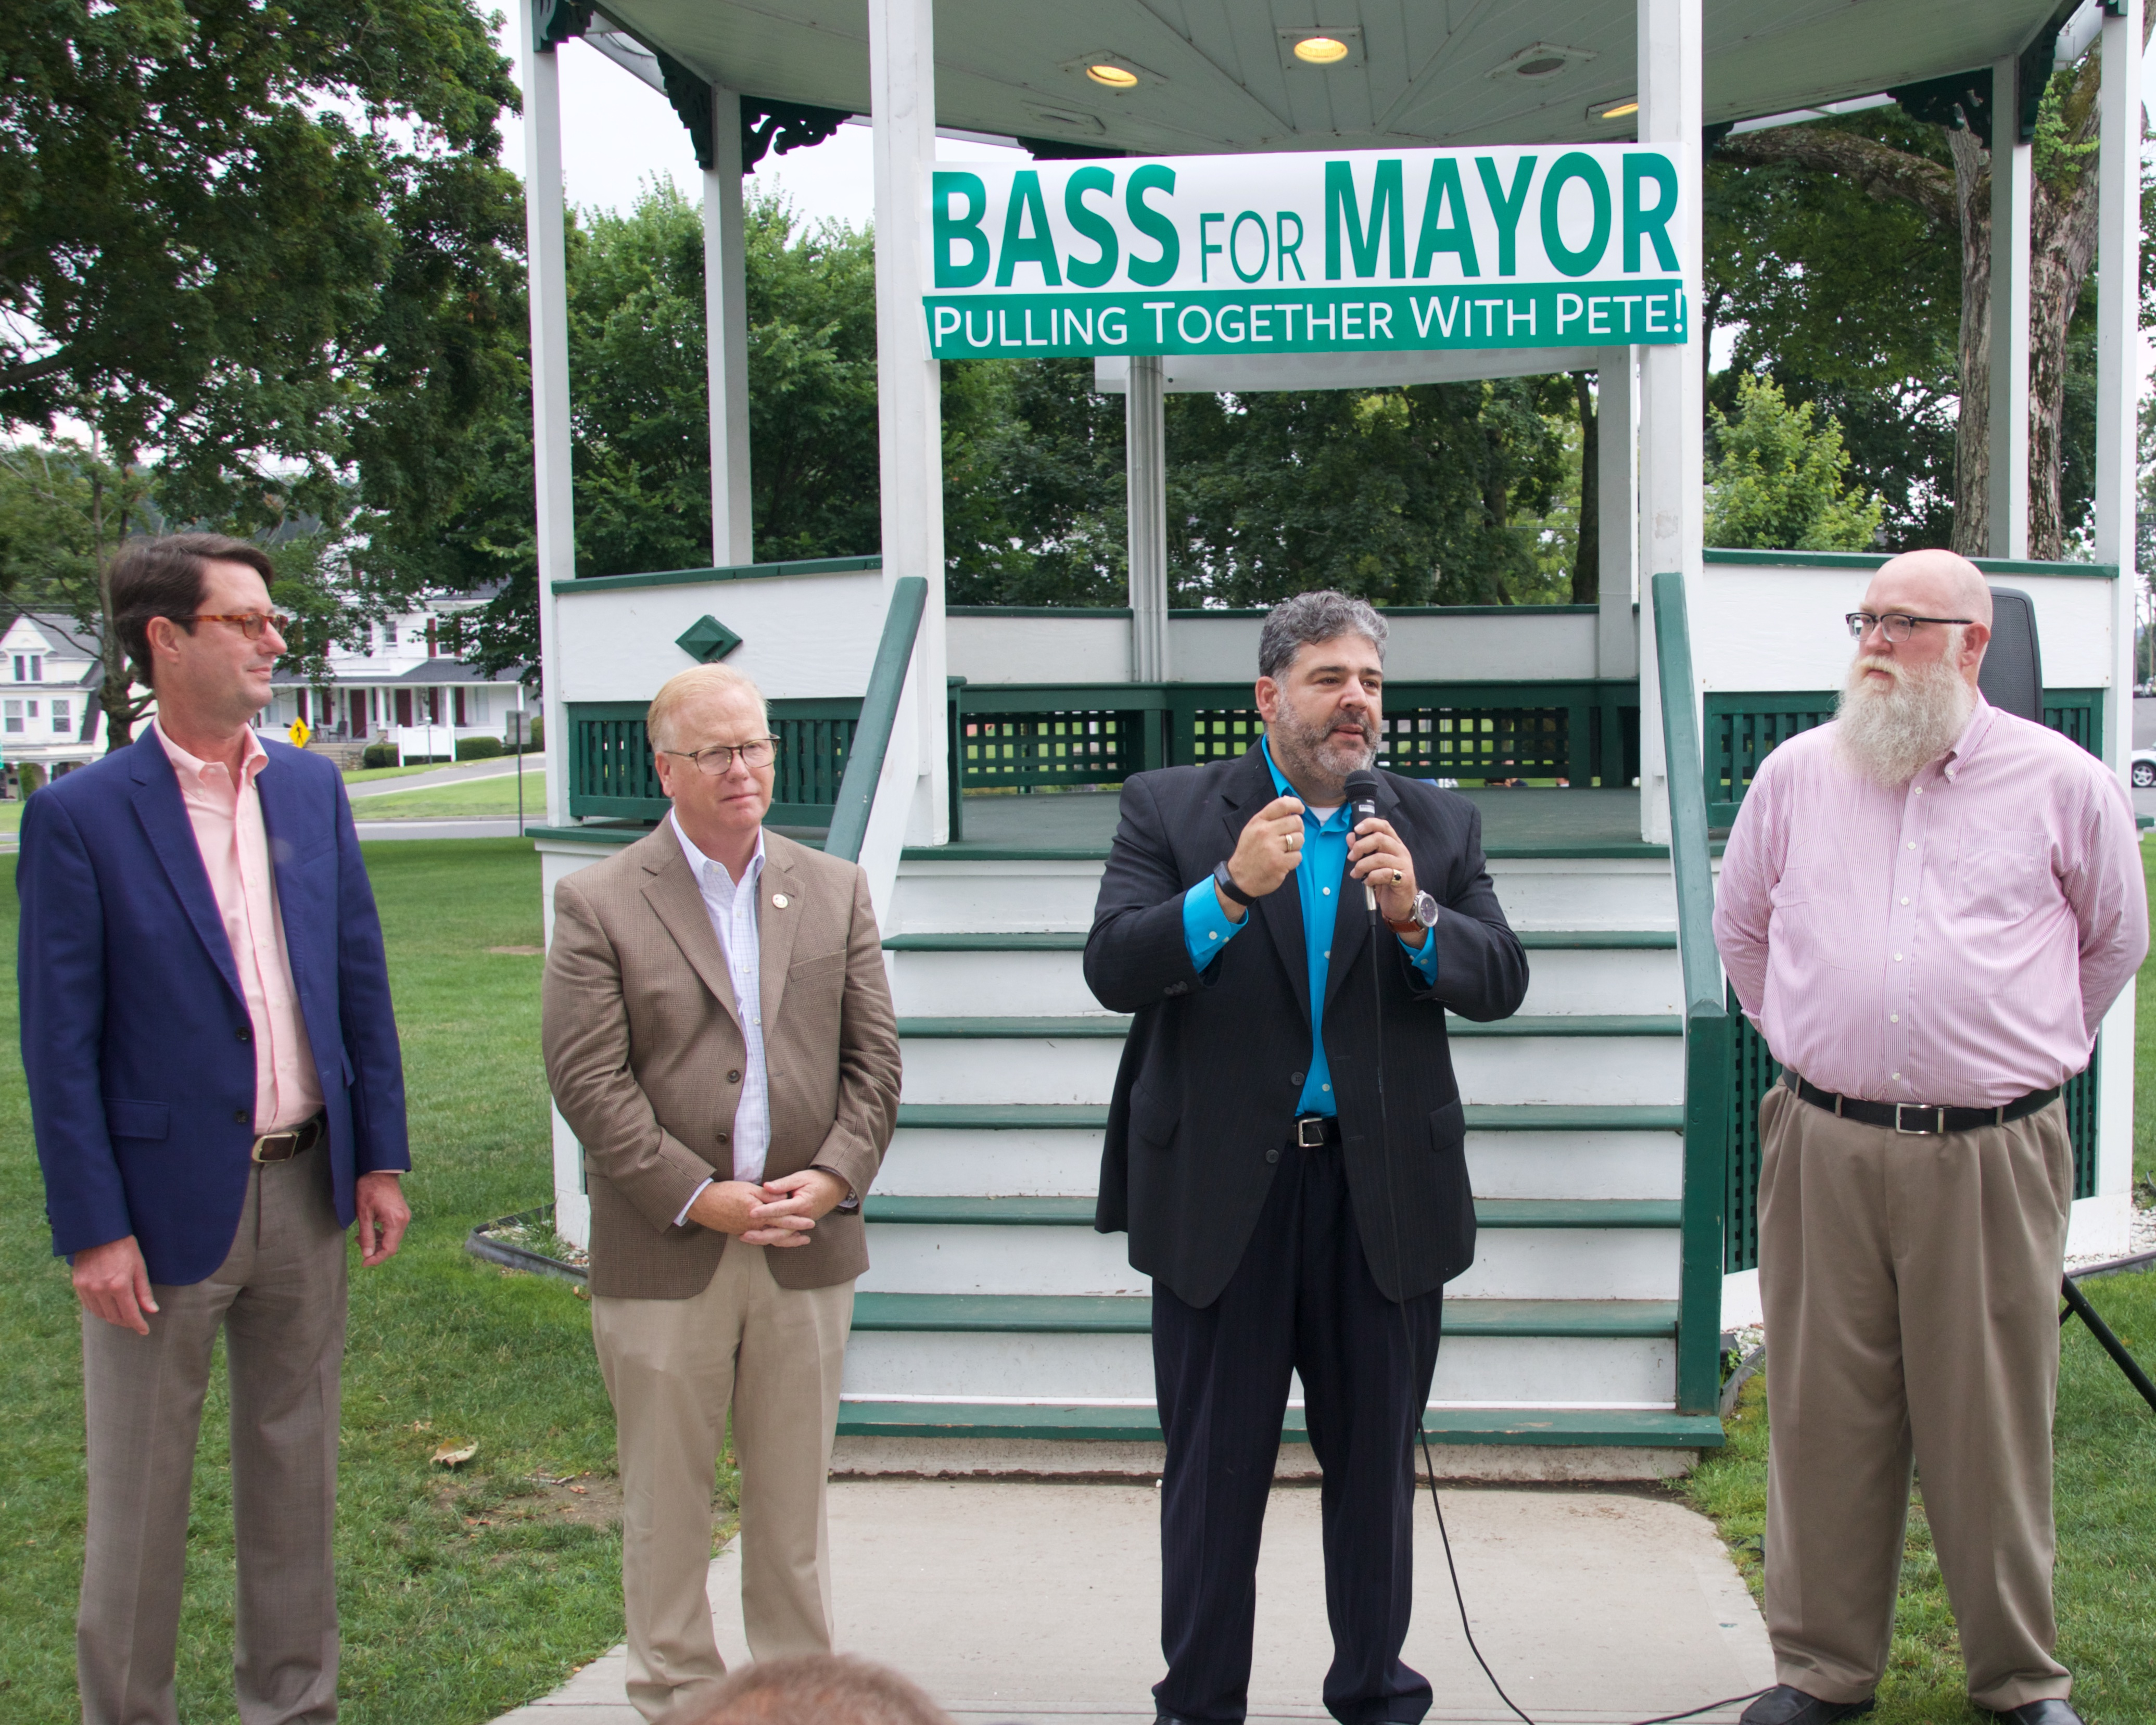 20170711_Pete_Bass_Mayor__07(1).jpg